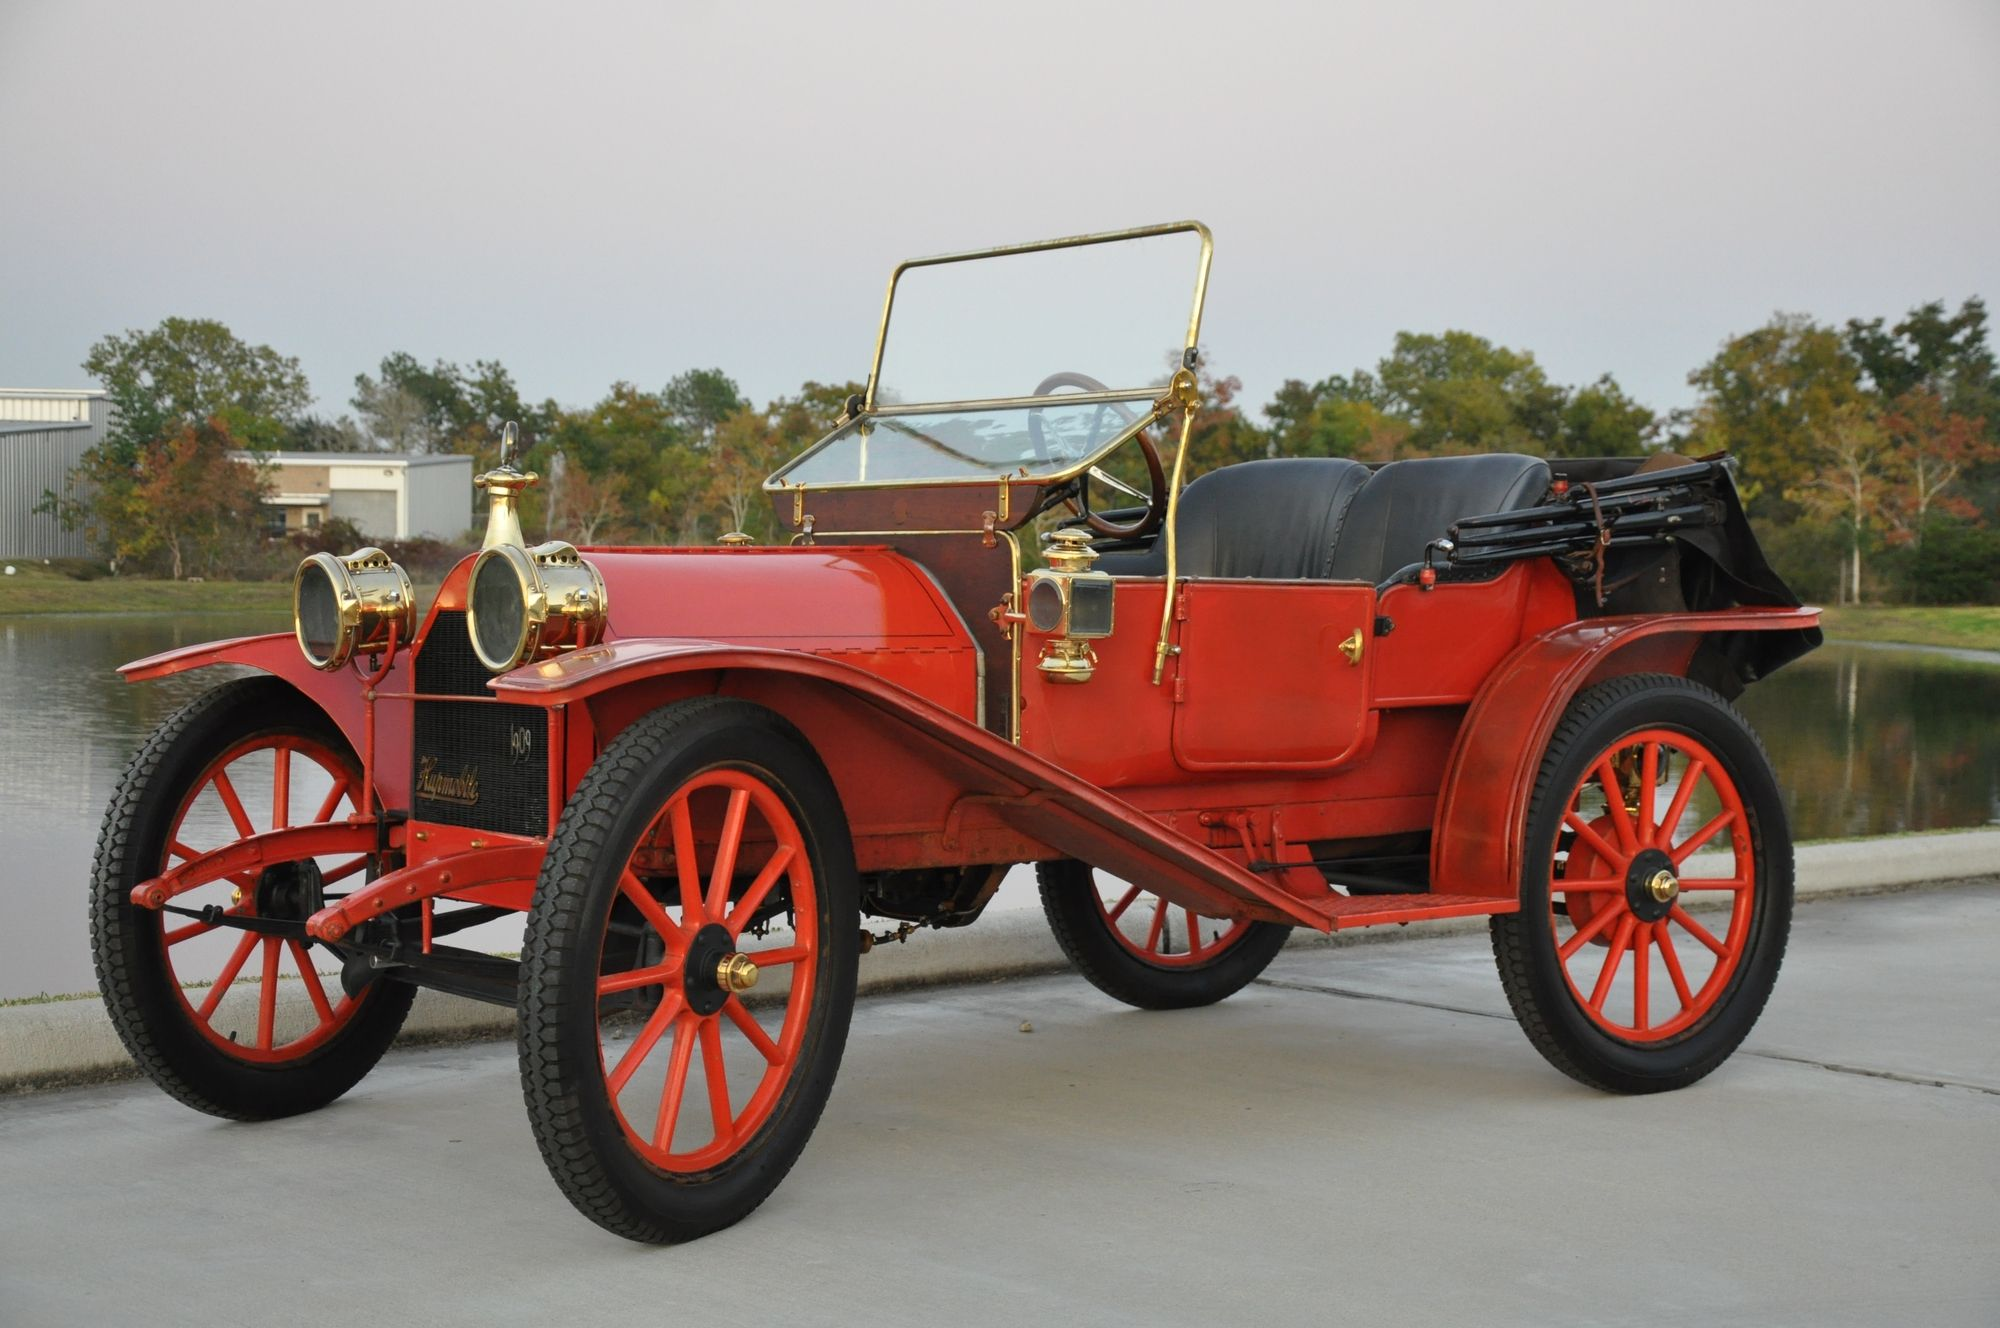 1909 Hupmobile Model 20 Vintage Cars Cars Antique Cars